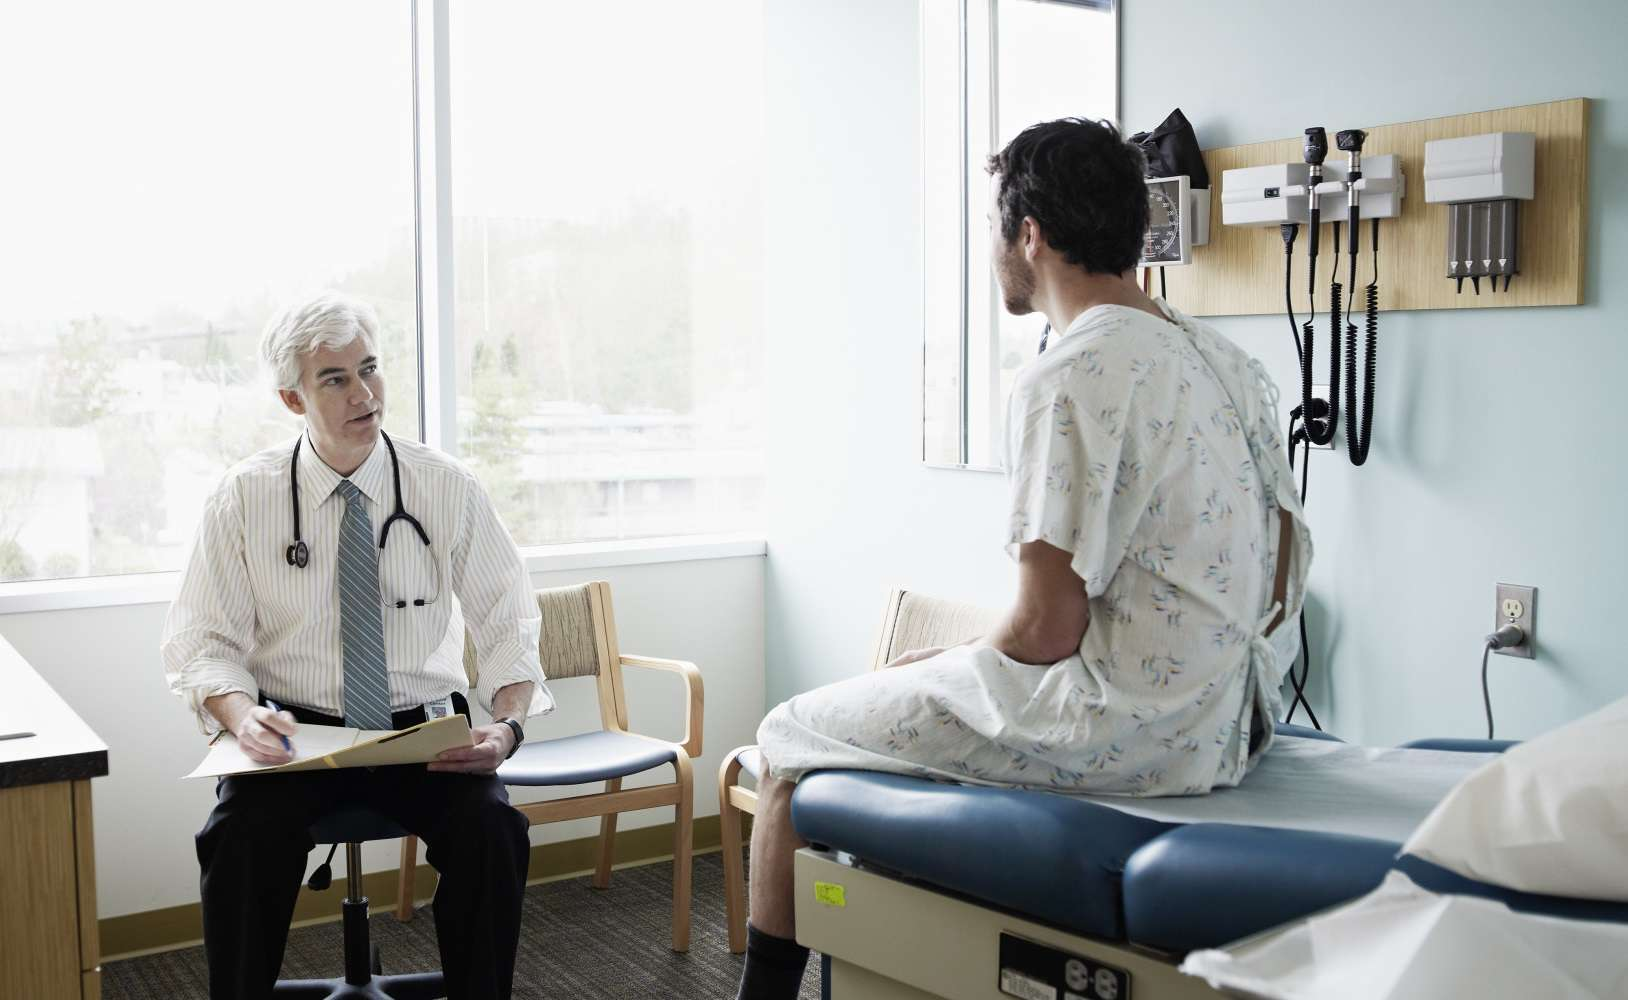 Male patient in discussion with doctor in an examination room.